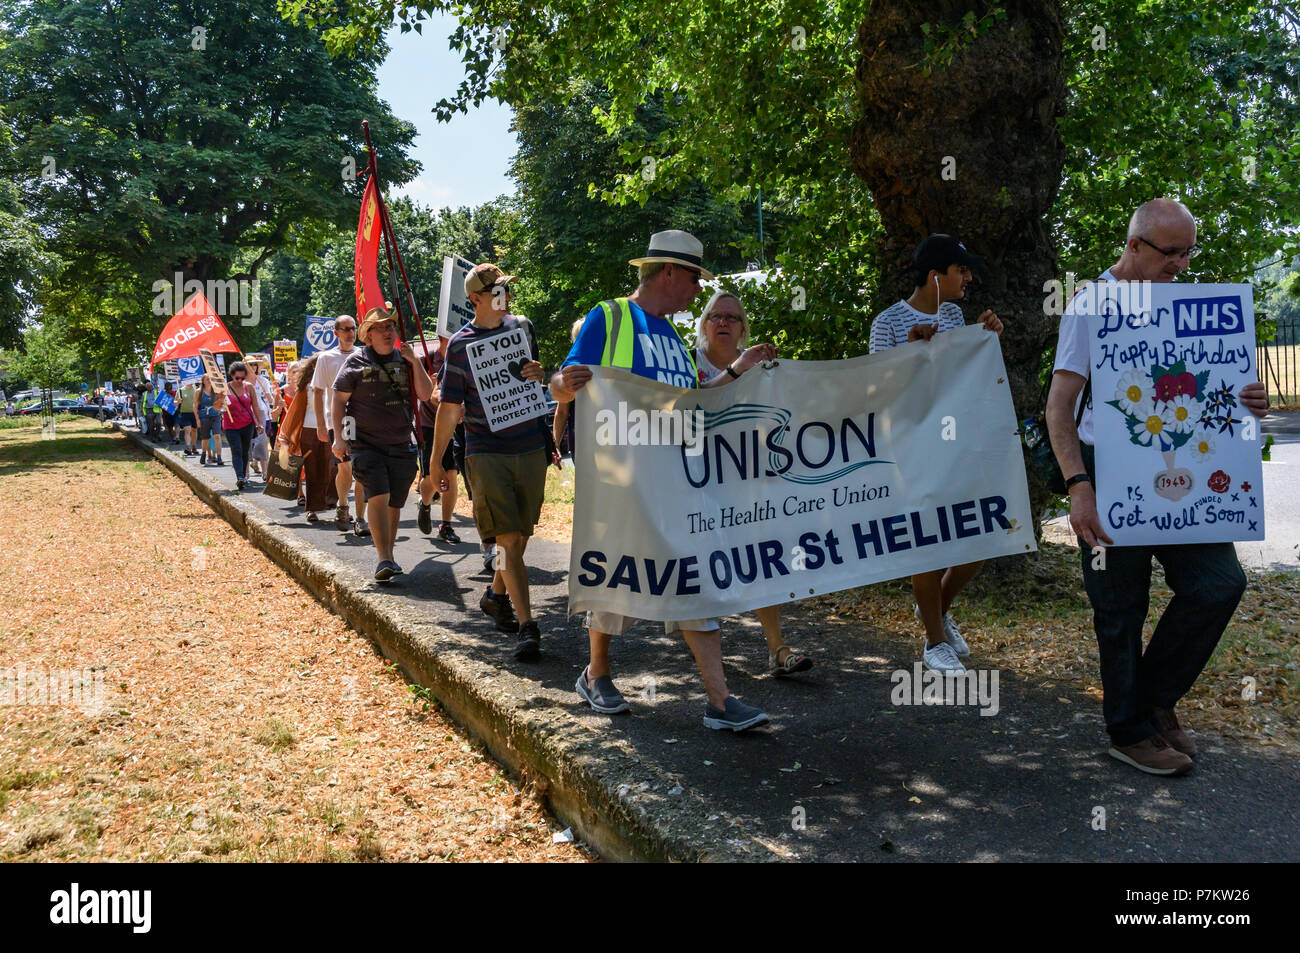 London, UK. 7th July 2018. Keep Our St Helier Hospital (KOSHH) campaigners against the closure of acute facilities at Epsom and St Helier Hospitals in south London celebrate the 70th Birthday of the NHS with a march from Sutton to a rally in front of St Helier Hospital.   he of sou Credit: Peter Marshall/Alamy Live News Stock Photo